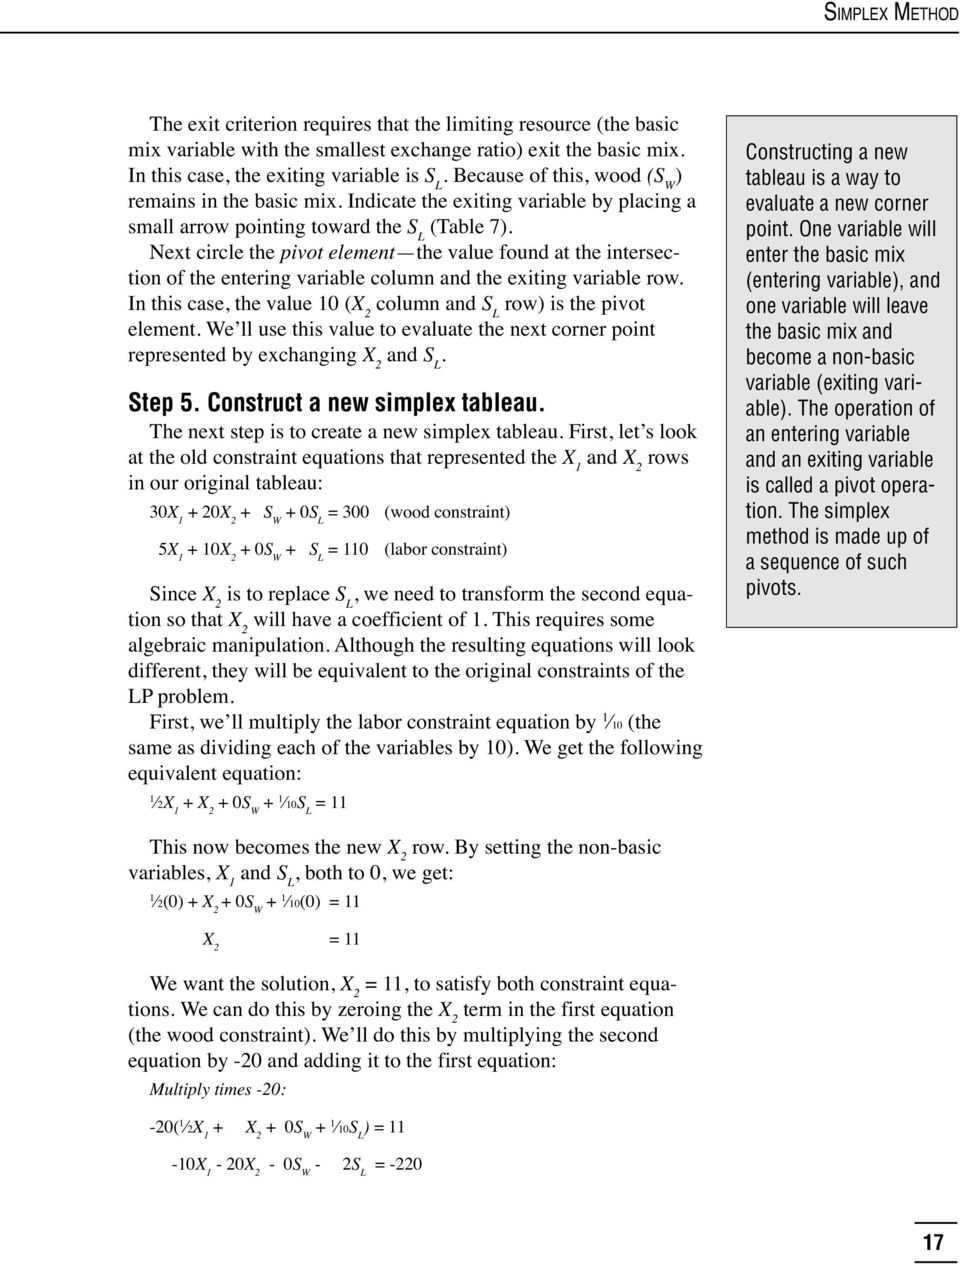 Using the Simplex Method to Solve Linear Programming